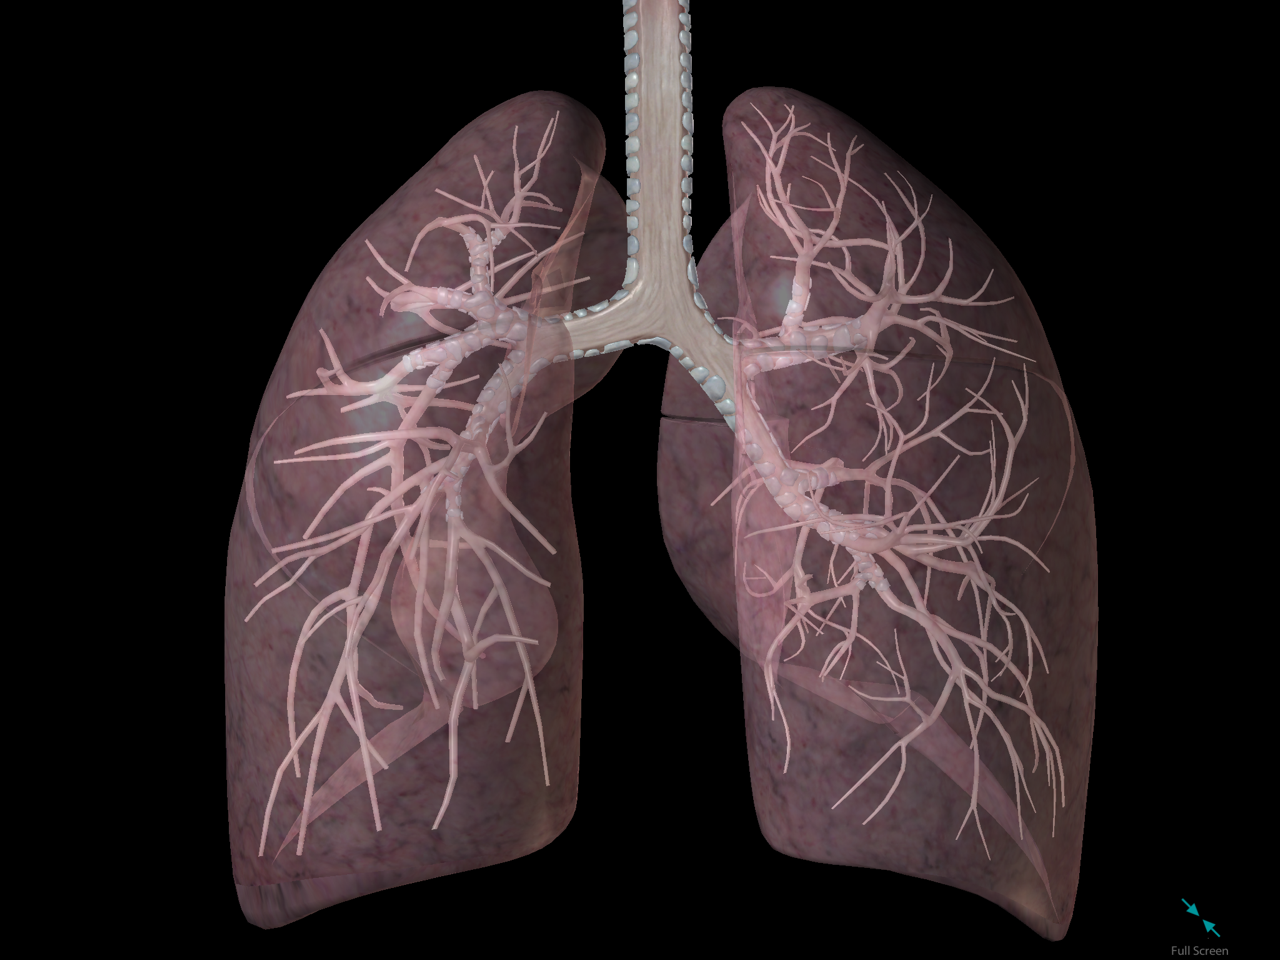 lungs-inside-bronchi-bronchioles-respiratory.png